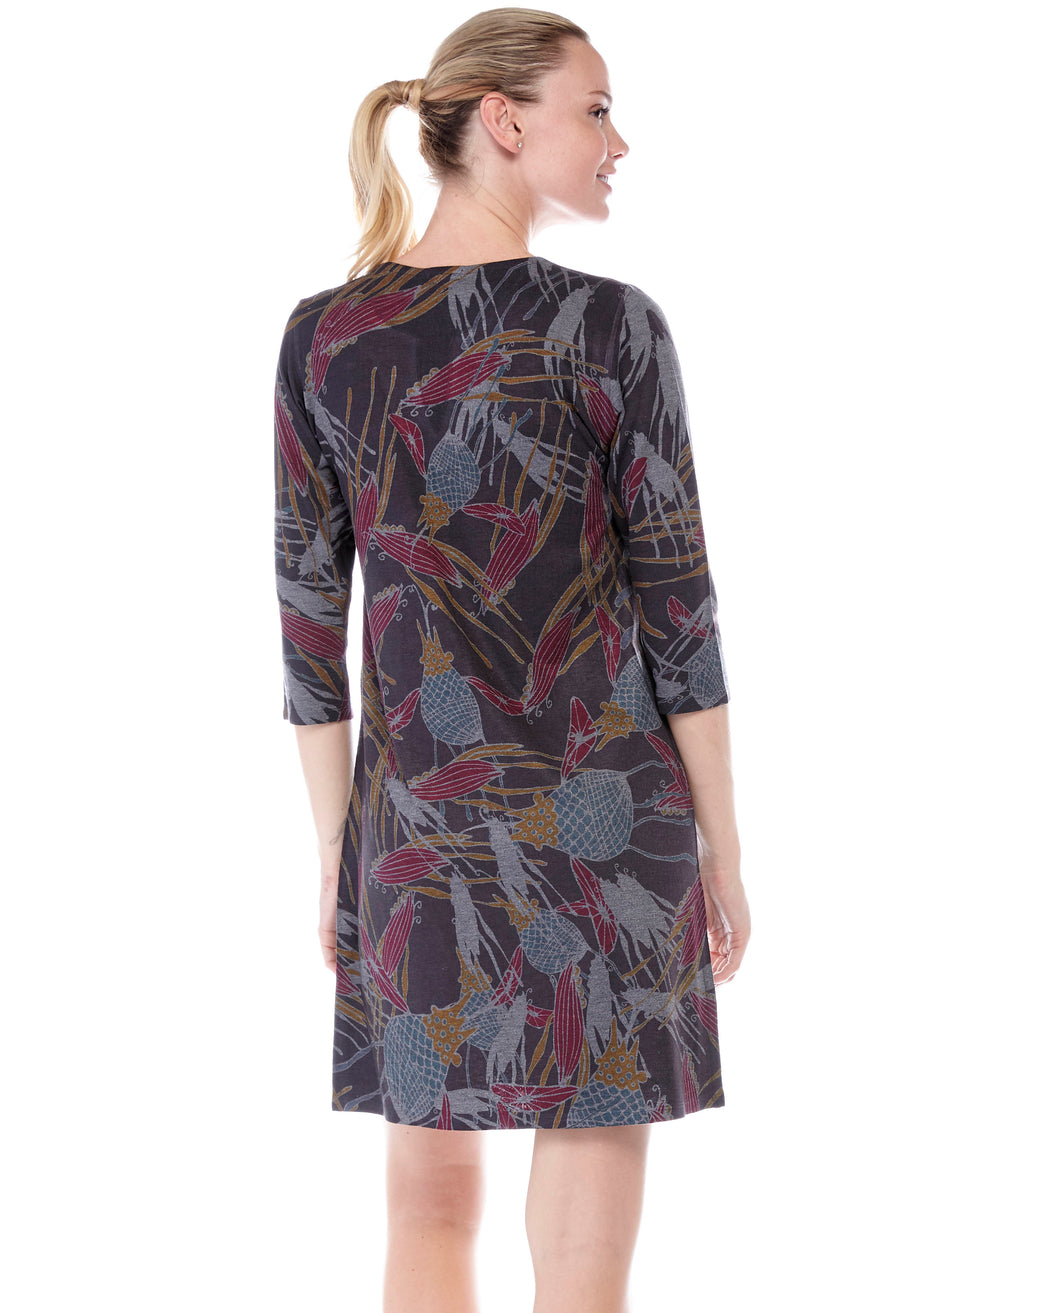 Hawaiian Notch Neck Dress in Royal Print - Atelier5